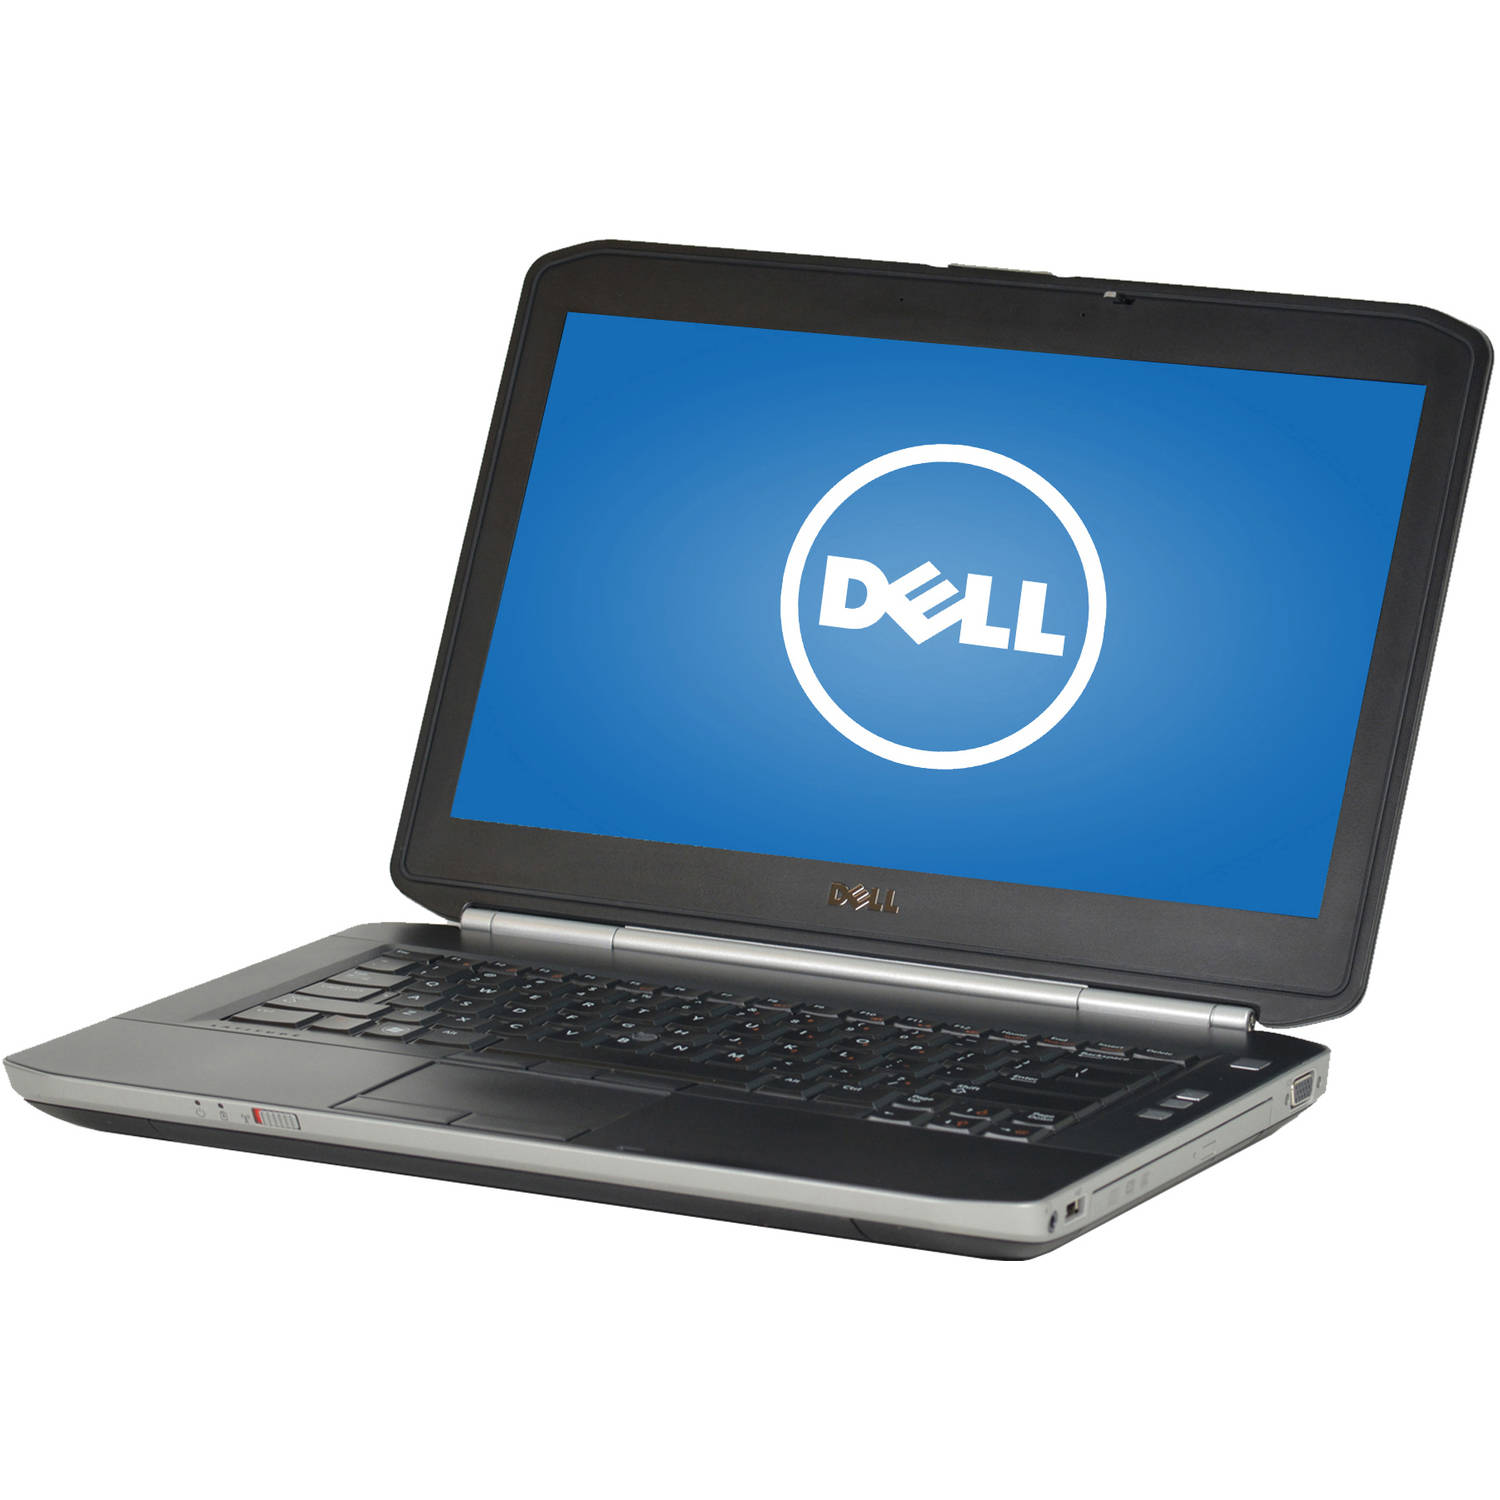 Refurbished Dell 14 Latitude E5420 Laptop PC with Intel Core i5 Processor, 4GB Memory, 500GB Hard Drive and Windows 10 Pro